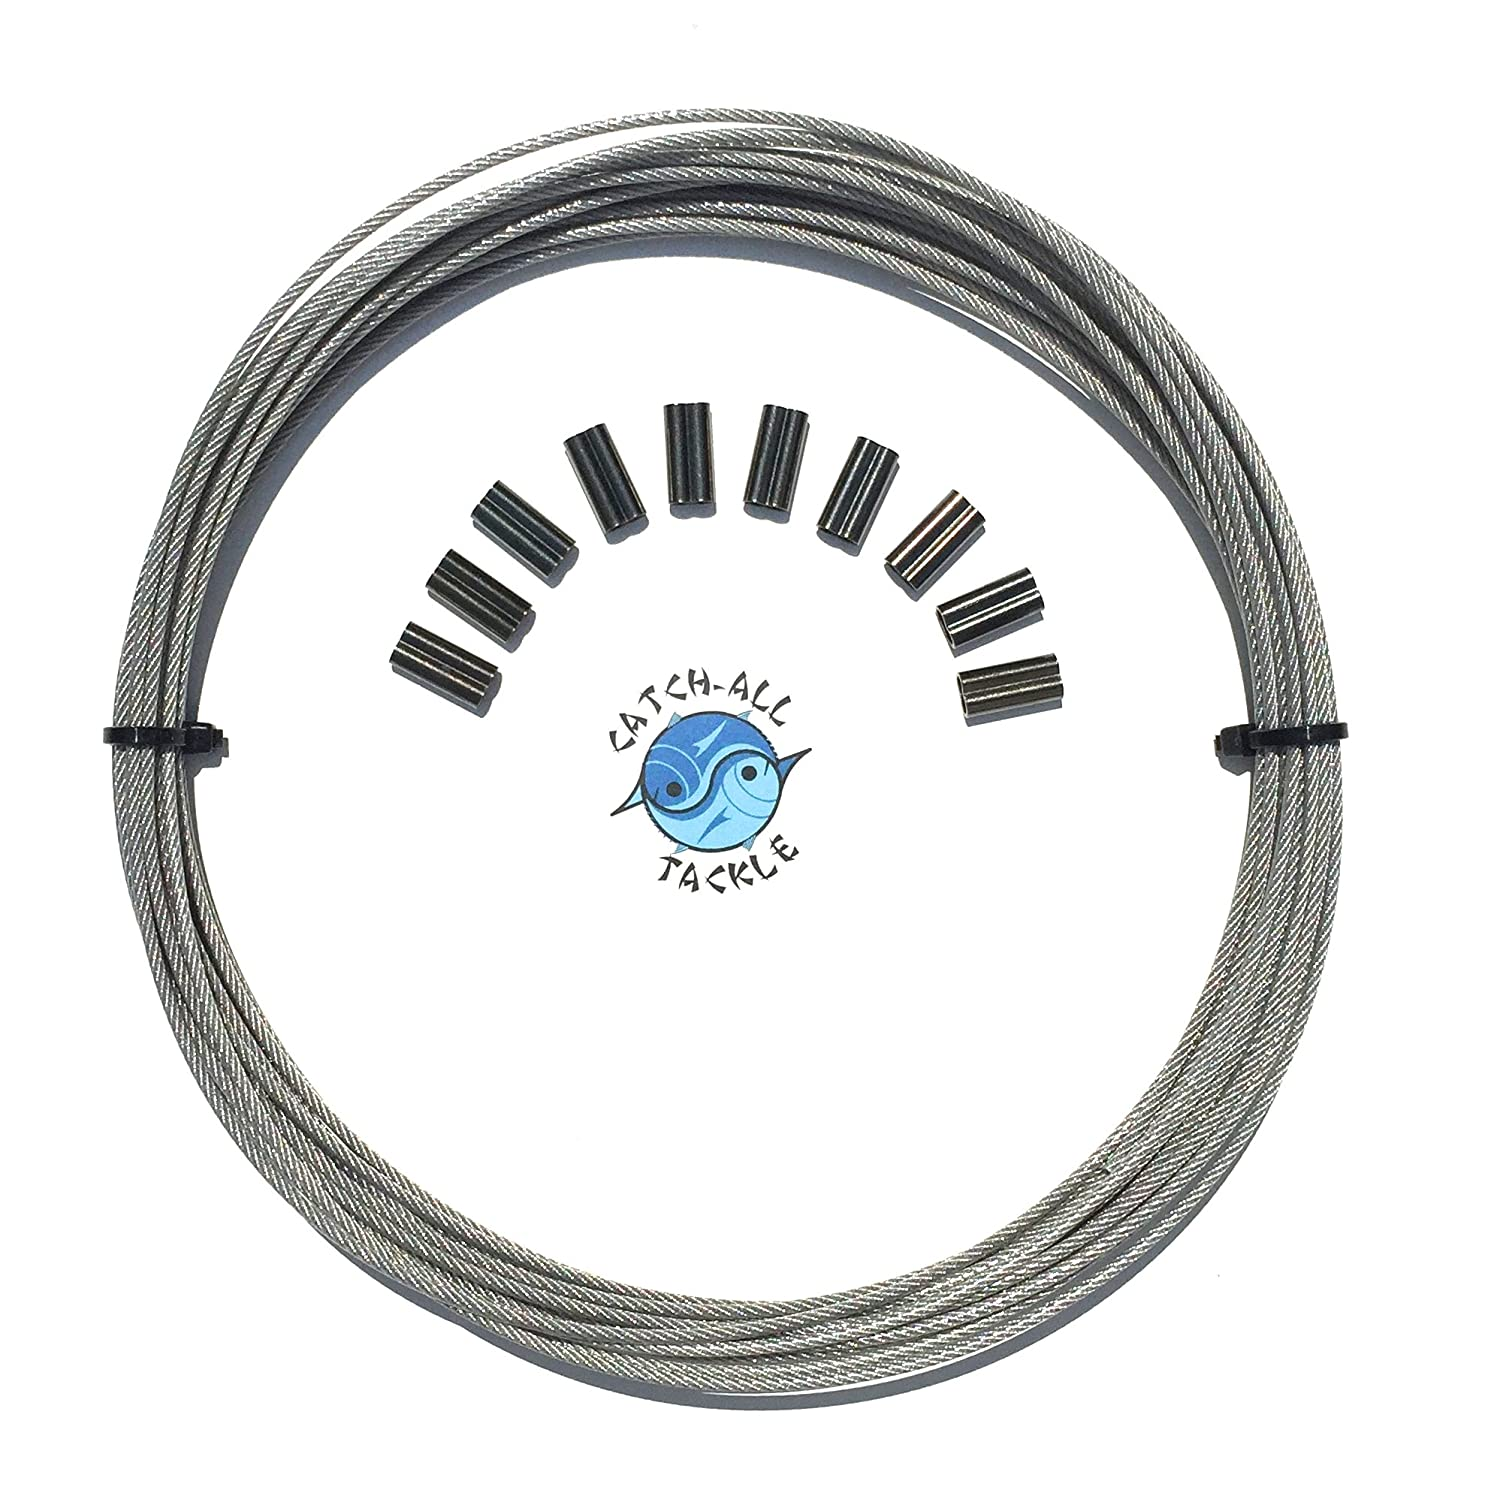 49-strand Cable Vinyl Coated 7x7 Stainless Steel Kit 30ft 275lb 1.2mm W/10 1.4mm Crimps